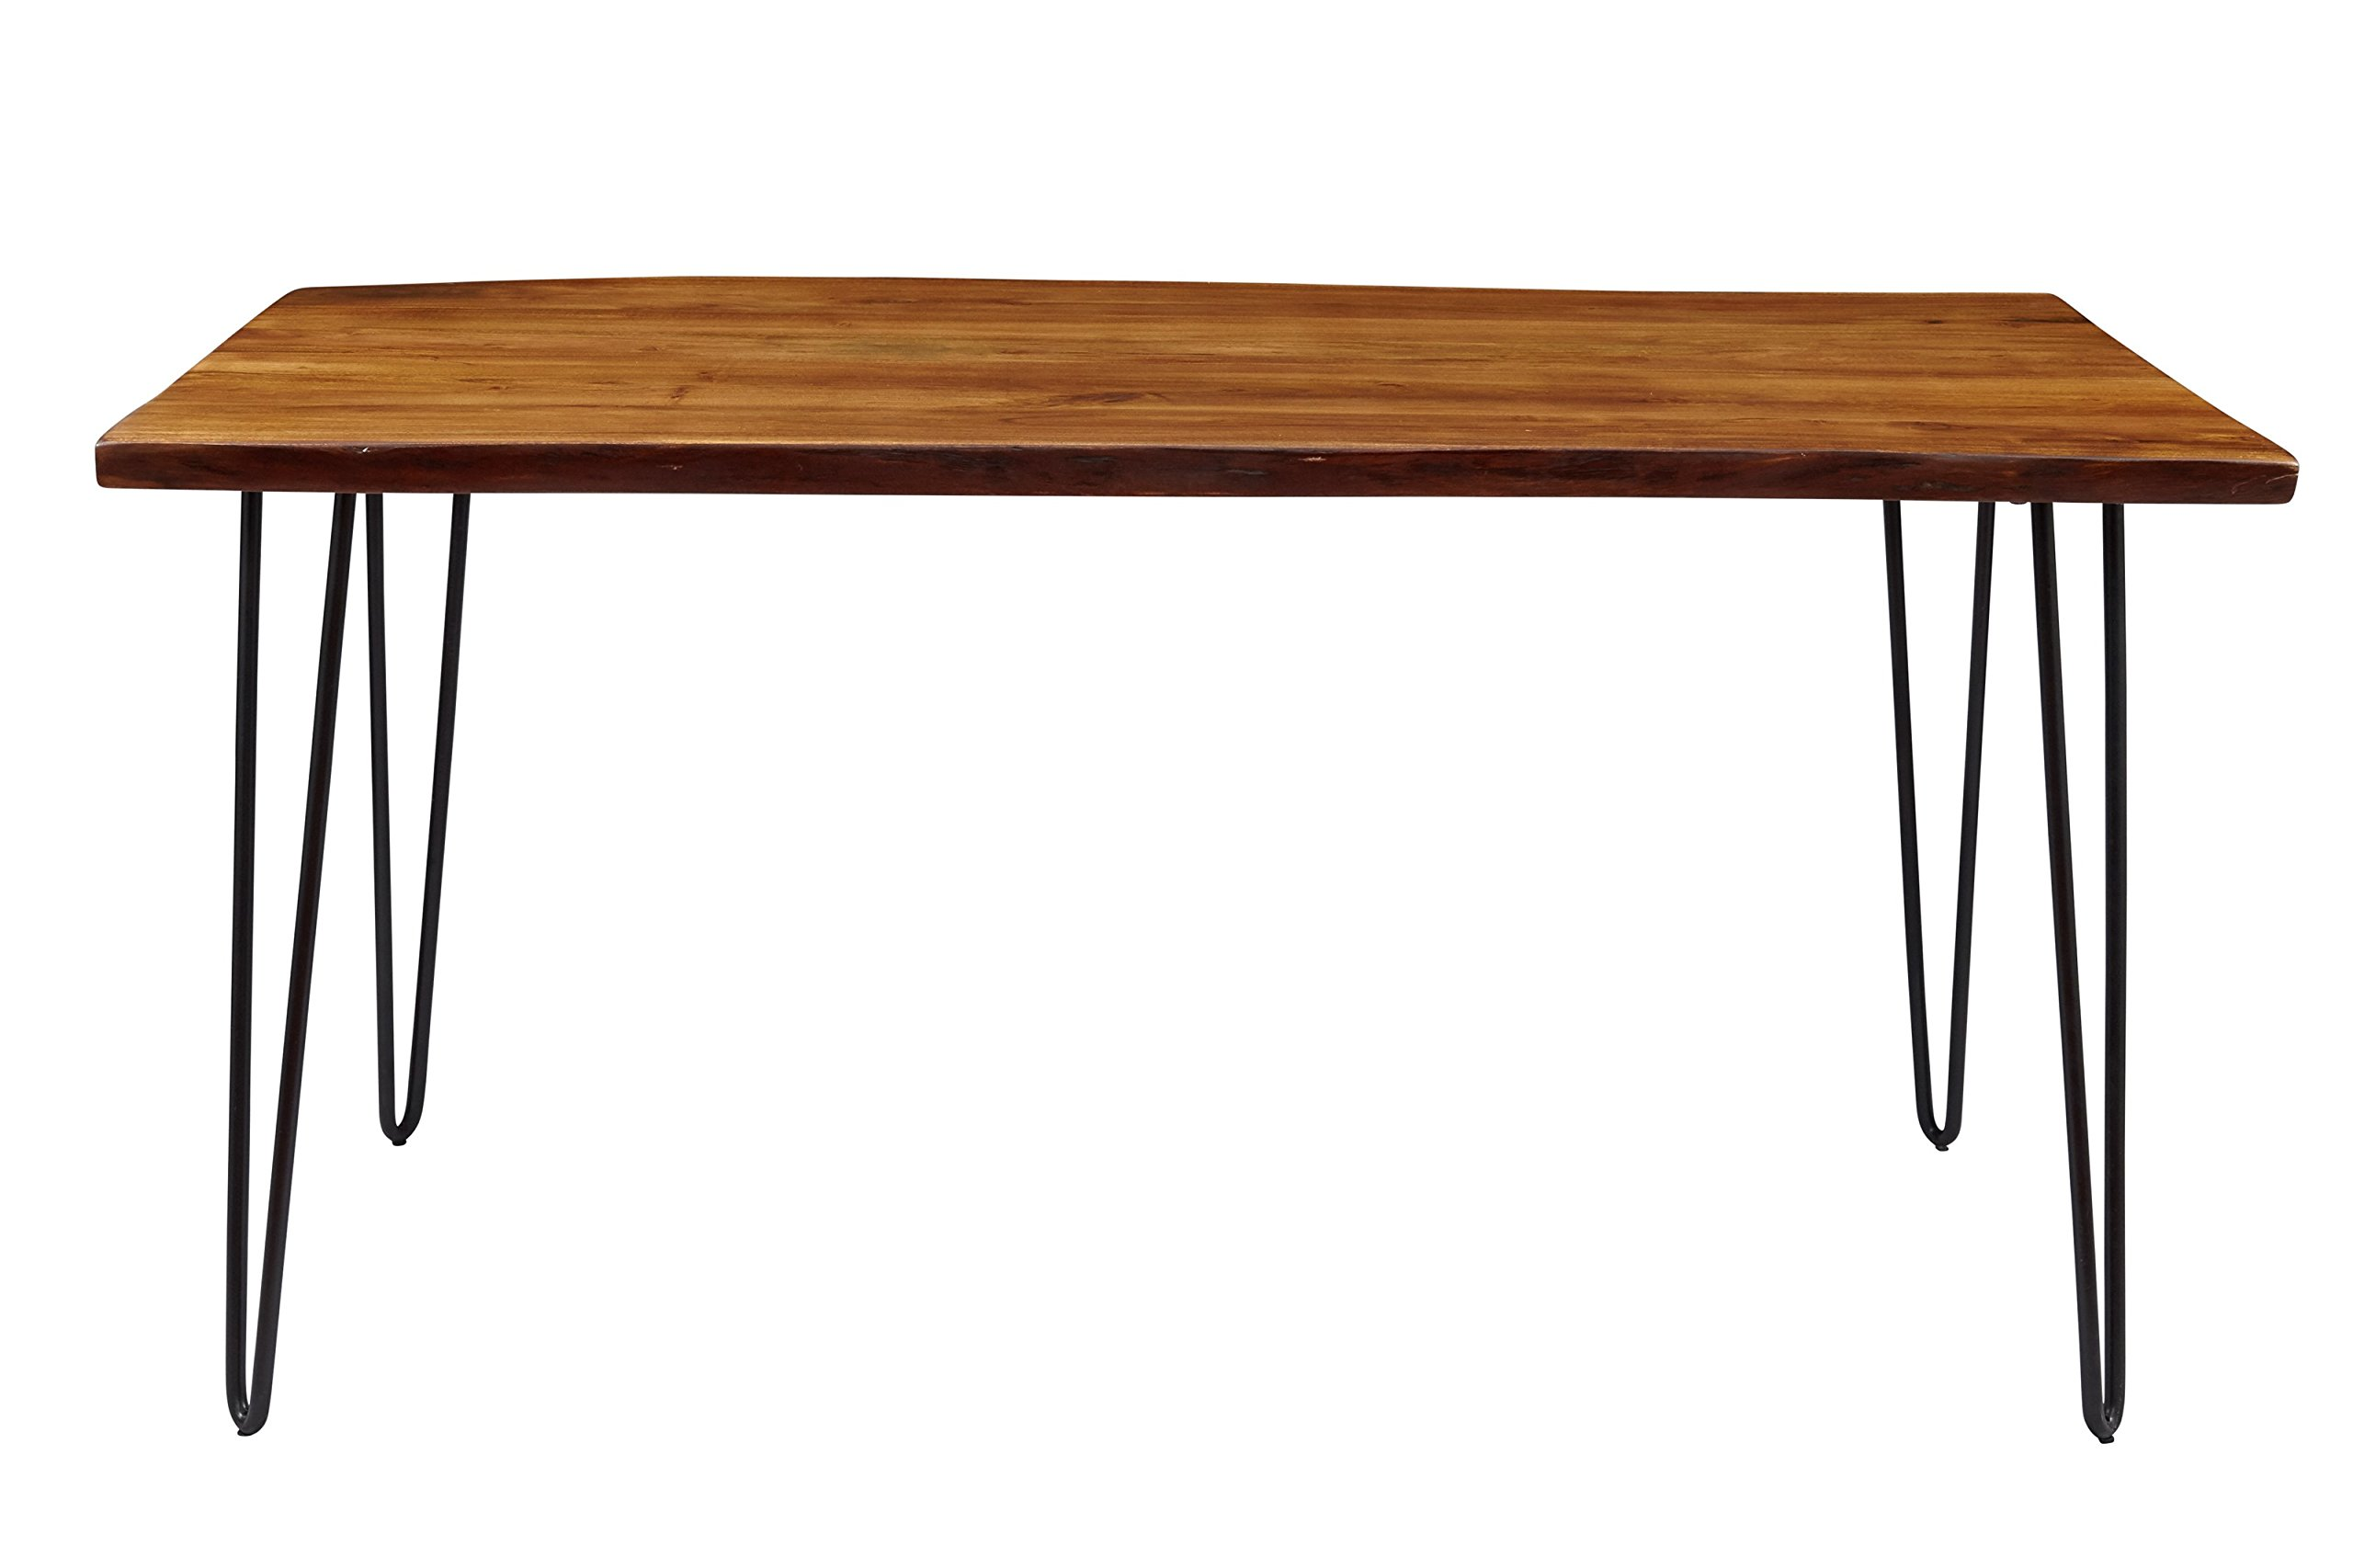 60 in. Wooden Dining Table